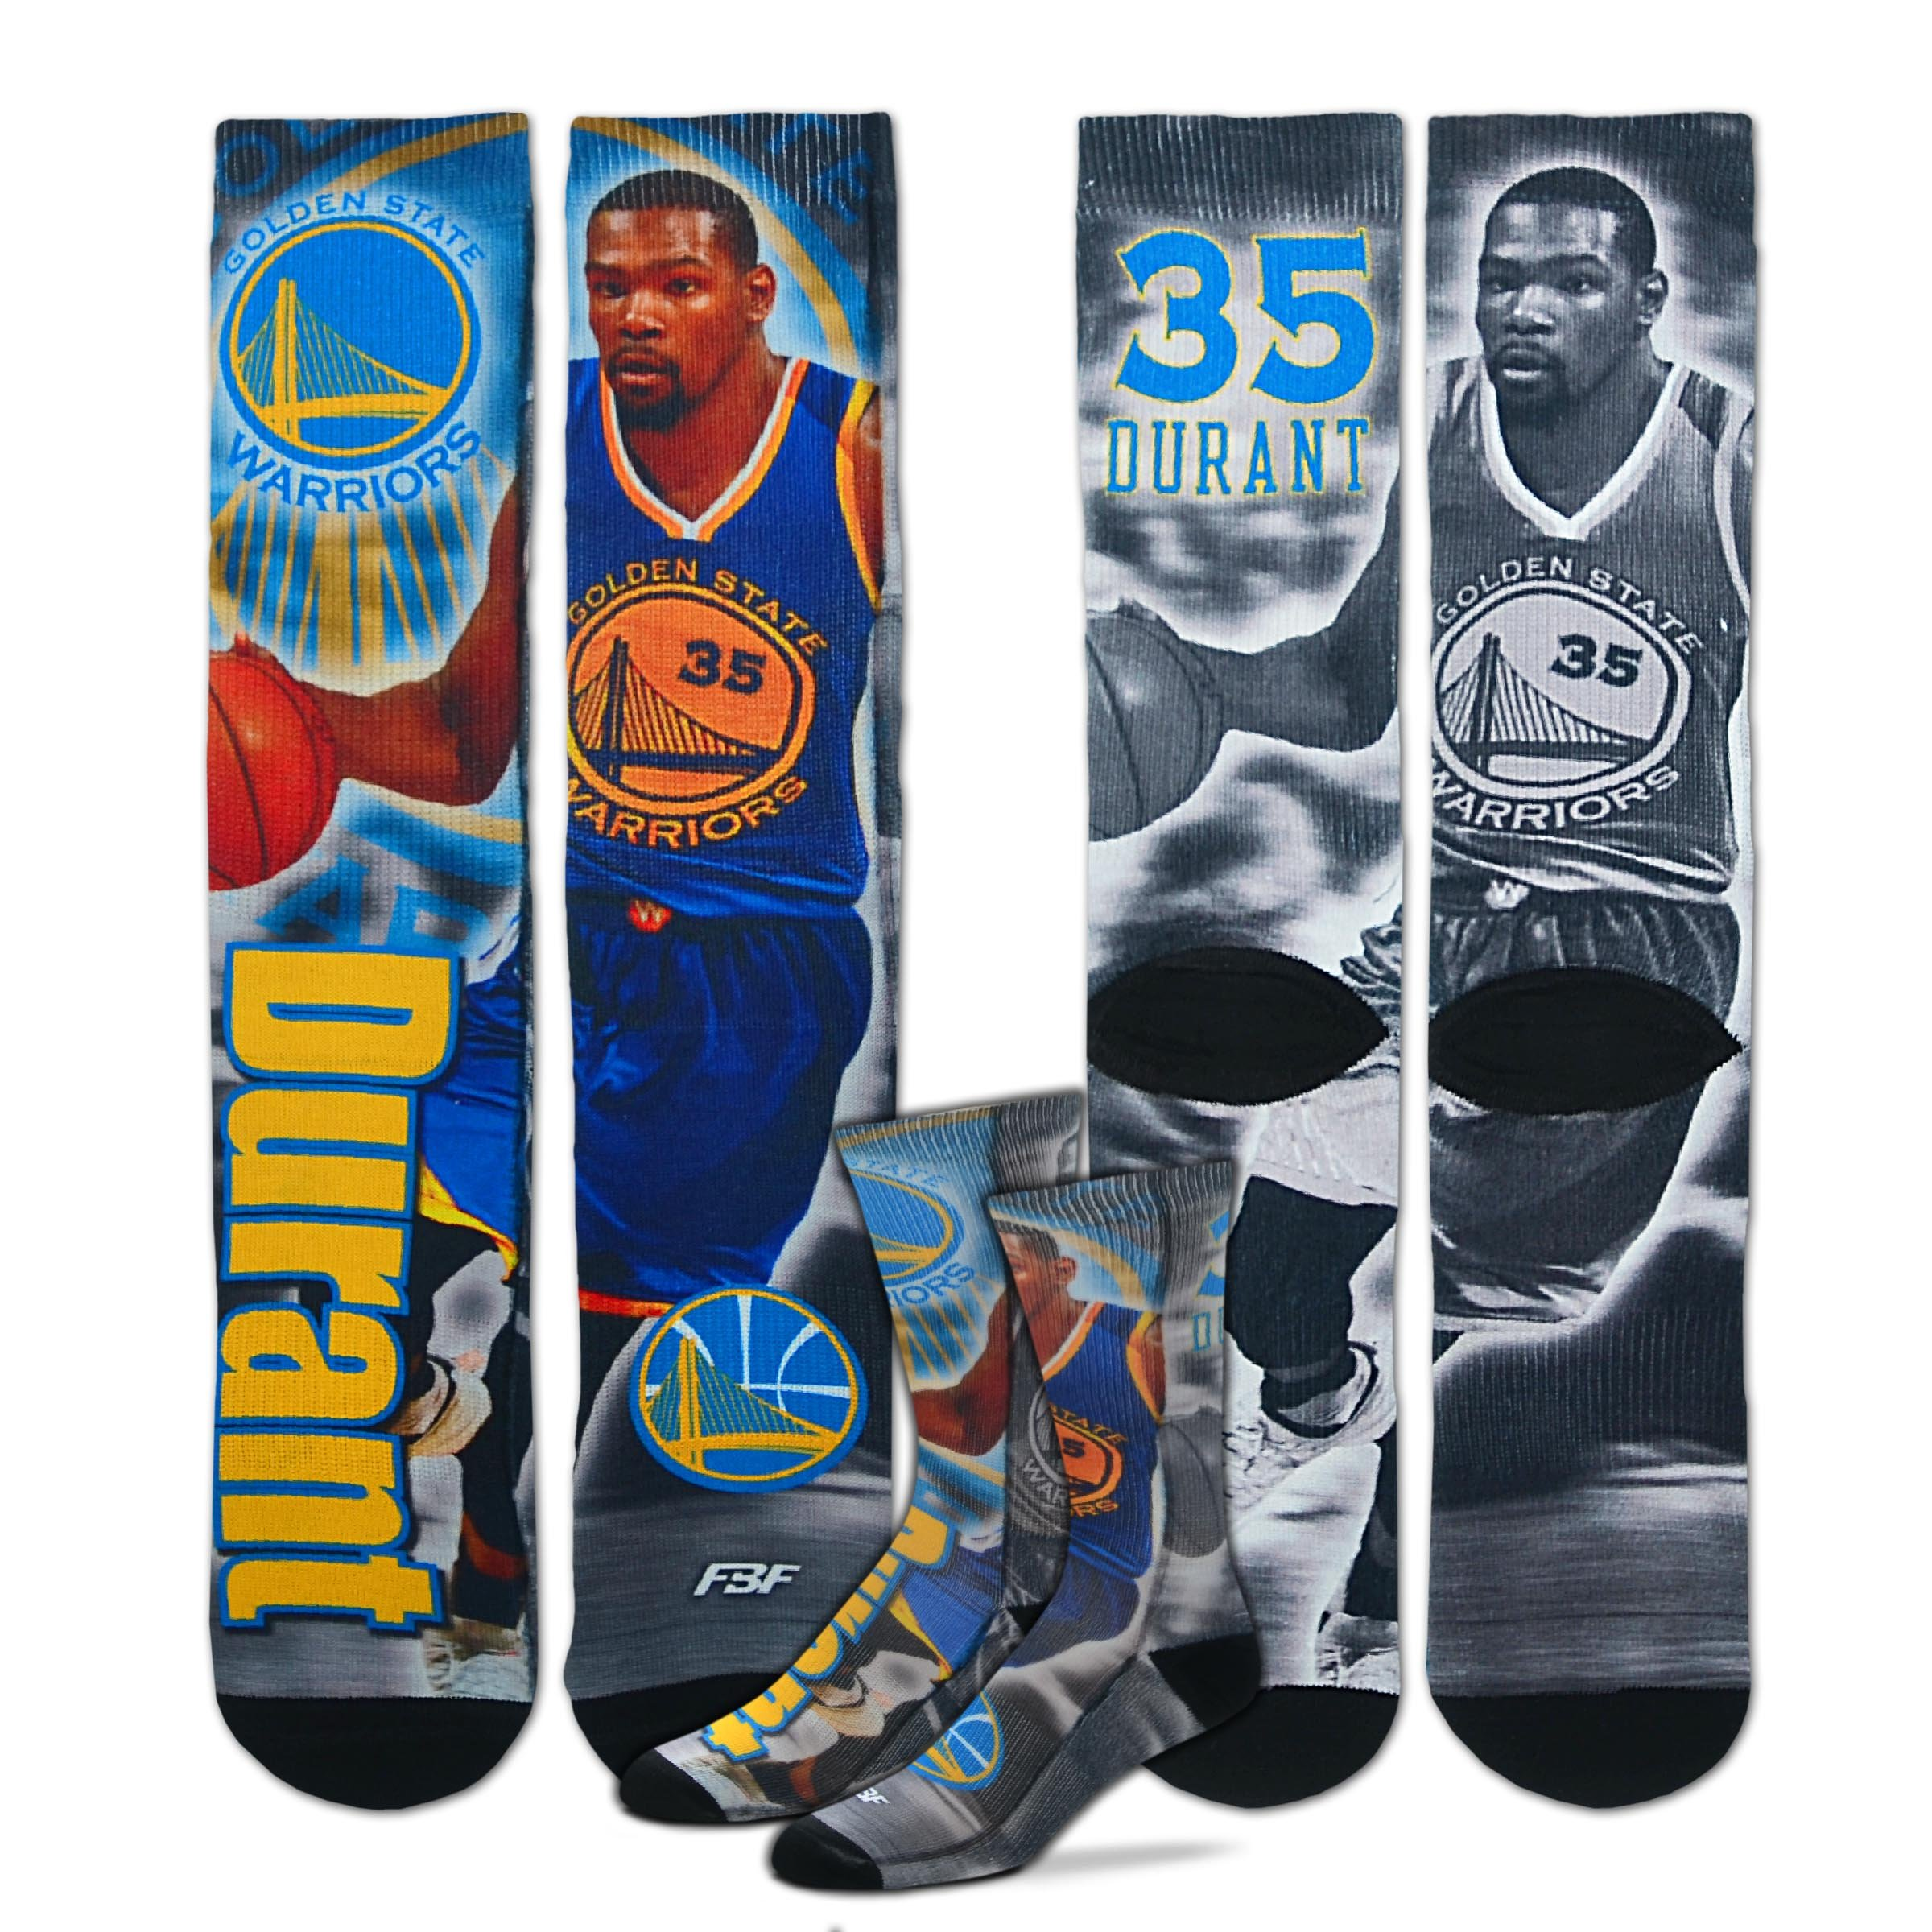 Golden State Warriors Youth Size NBA Drive Kids Socks (4-8 YRS) 1 Pair - Kevin Durant #35 by For Bare Feet